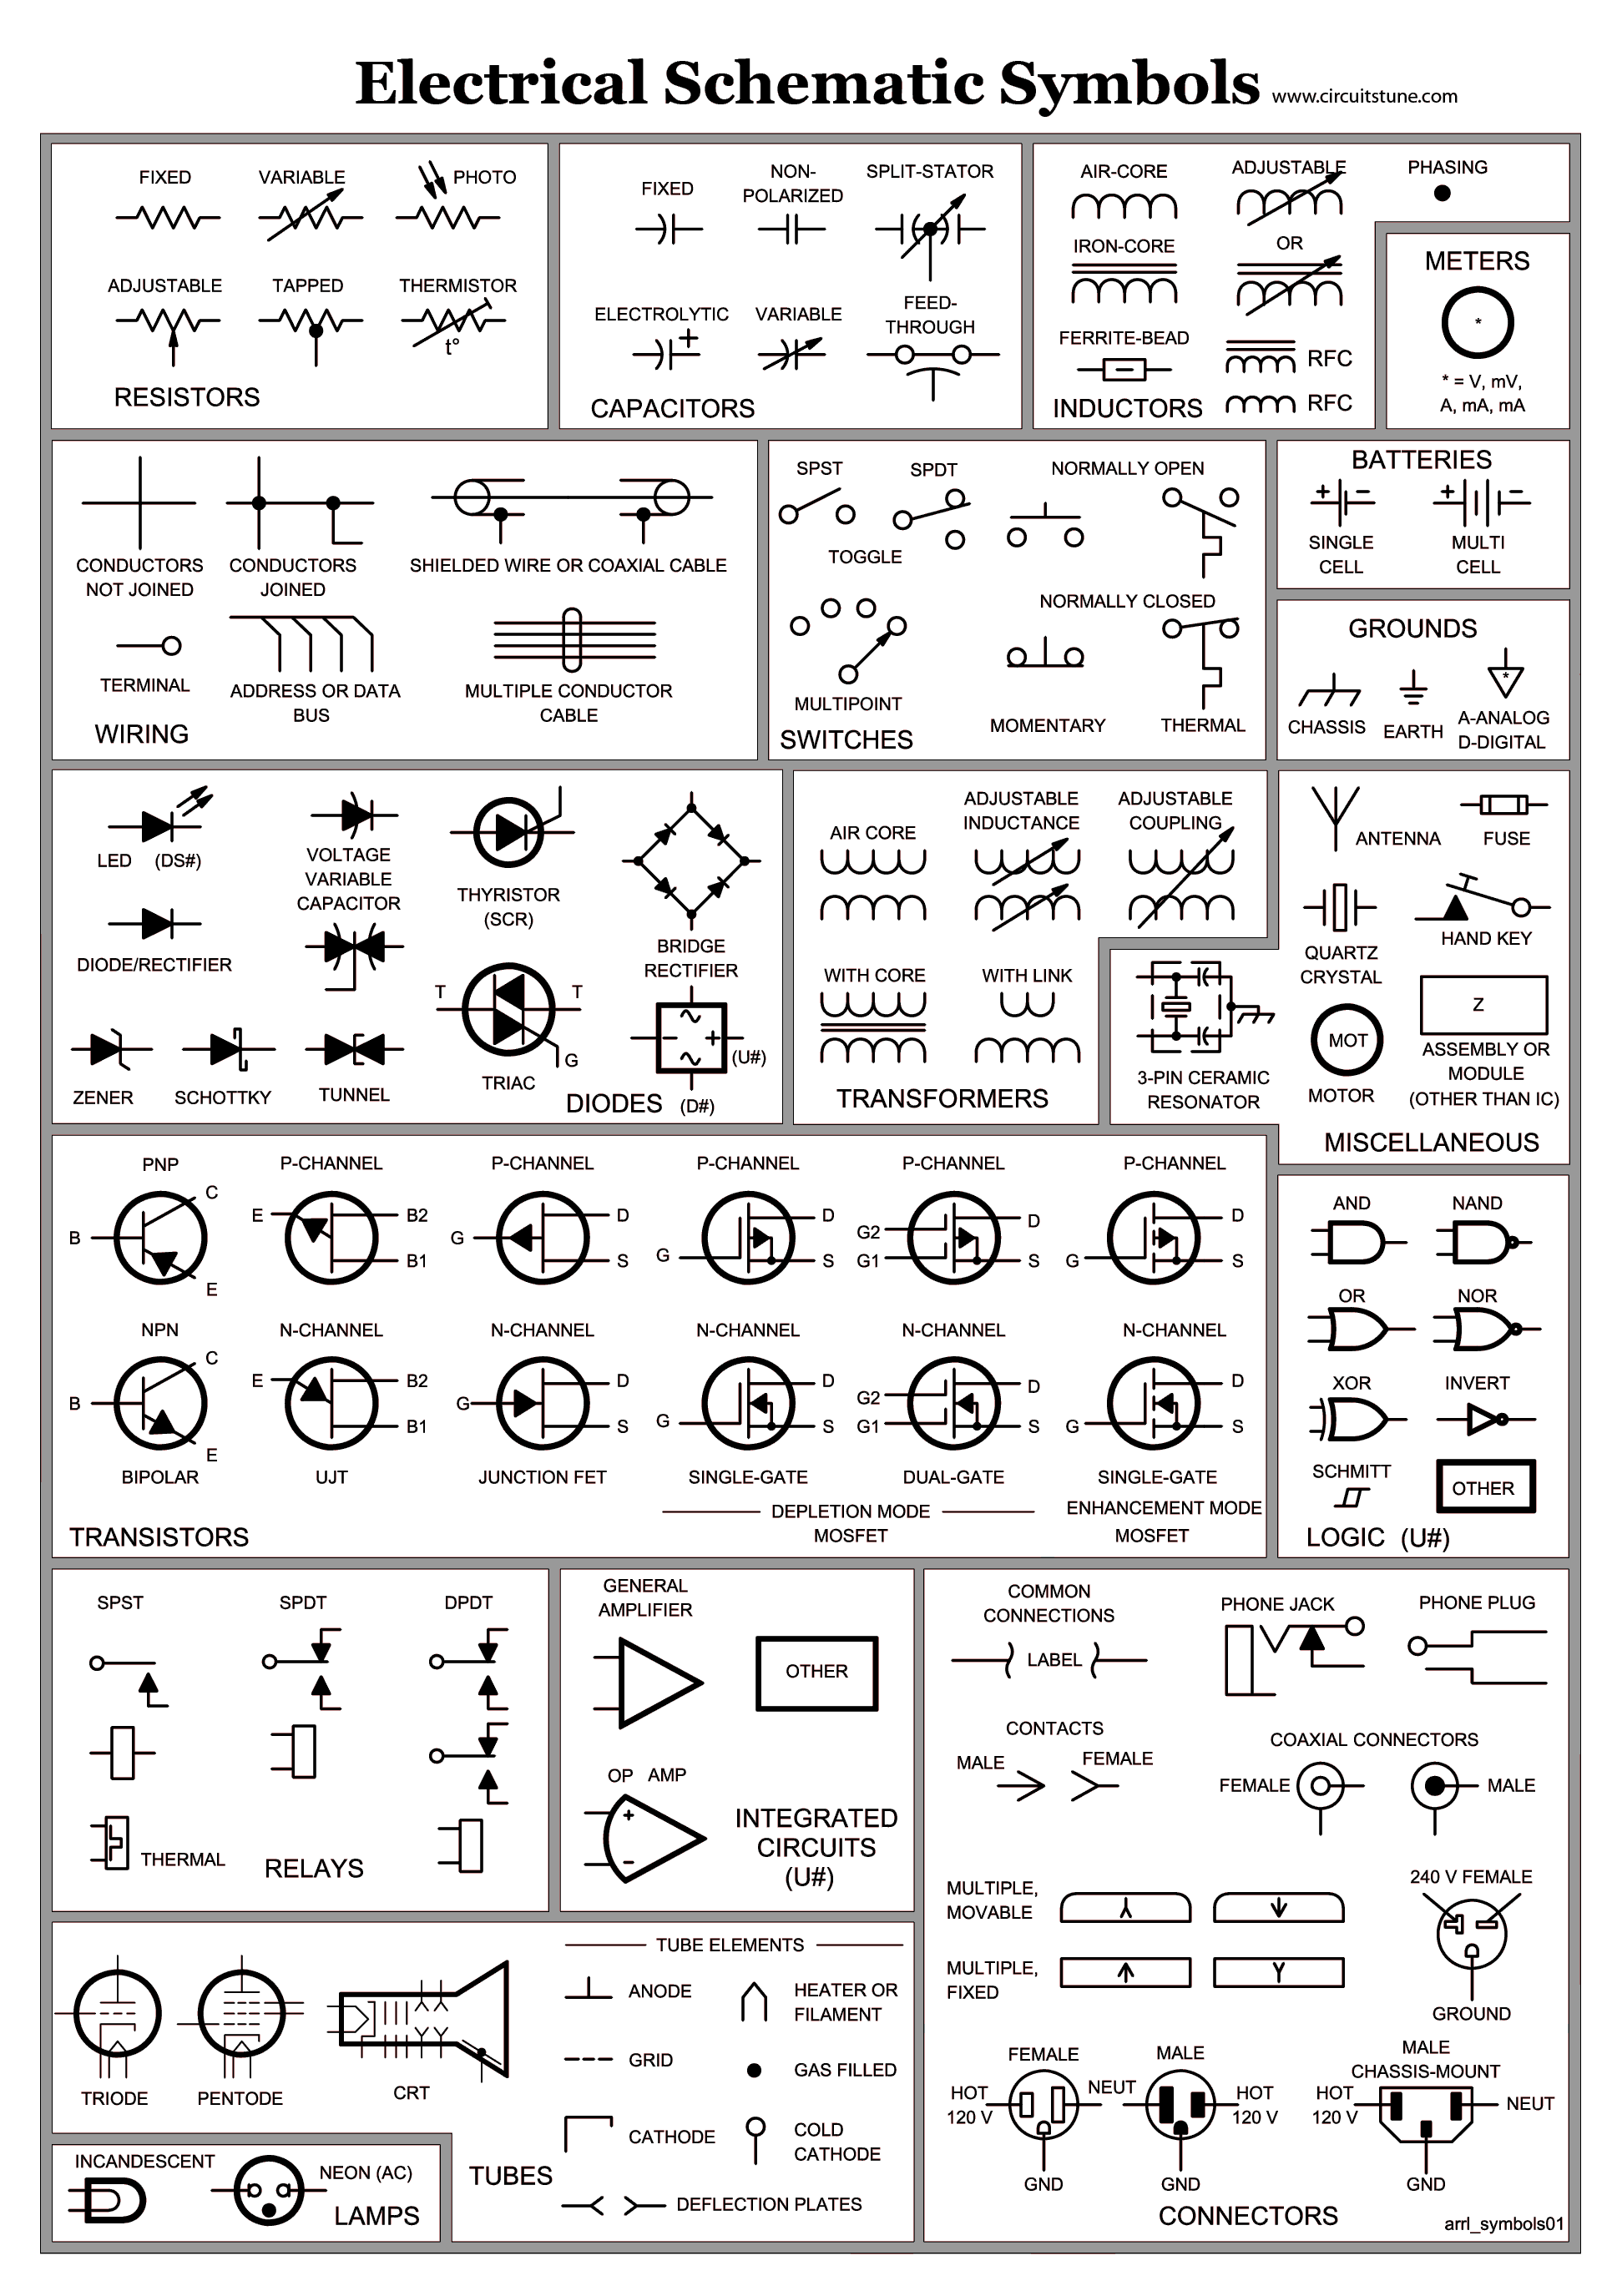 Wiring Diagram Electrical Schematic Symbol Wiring Diagram